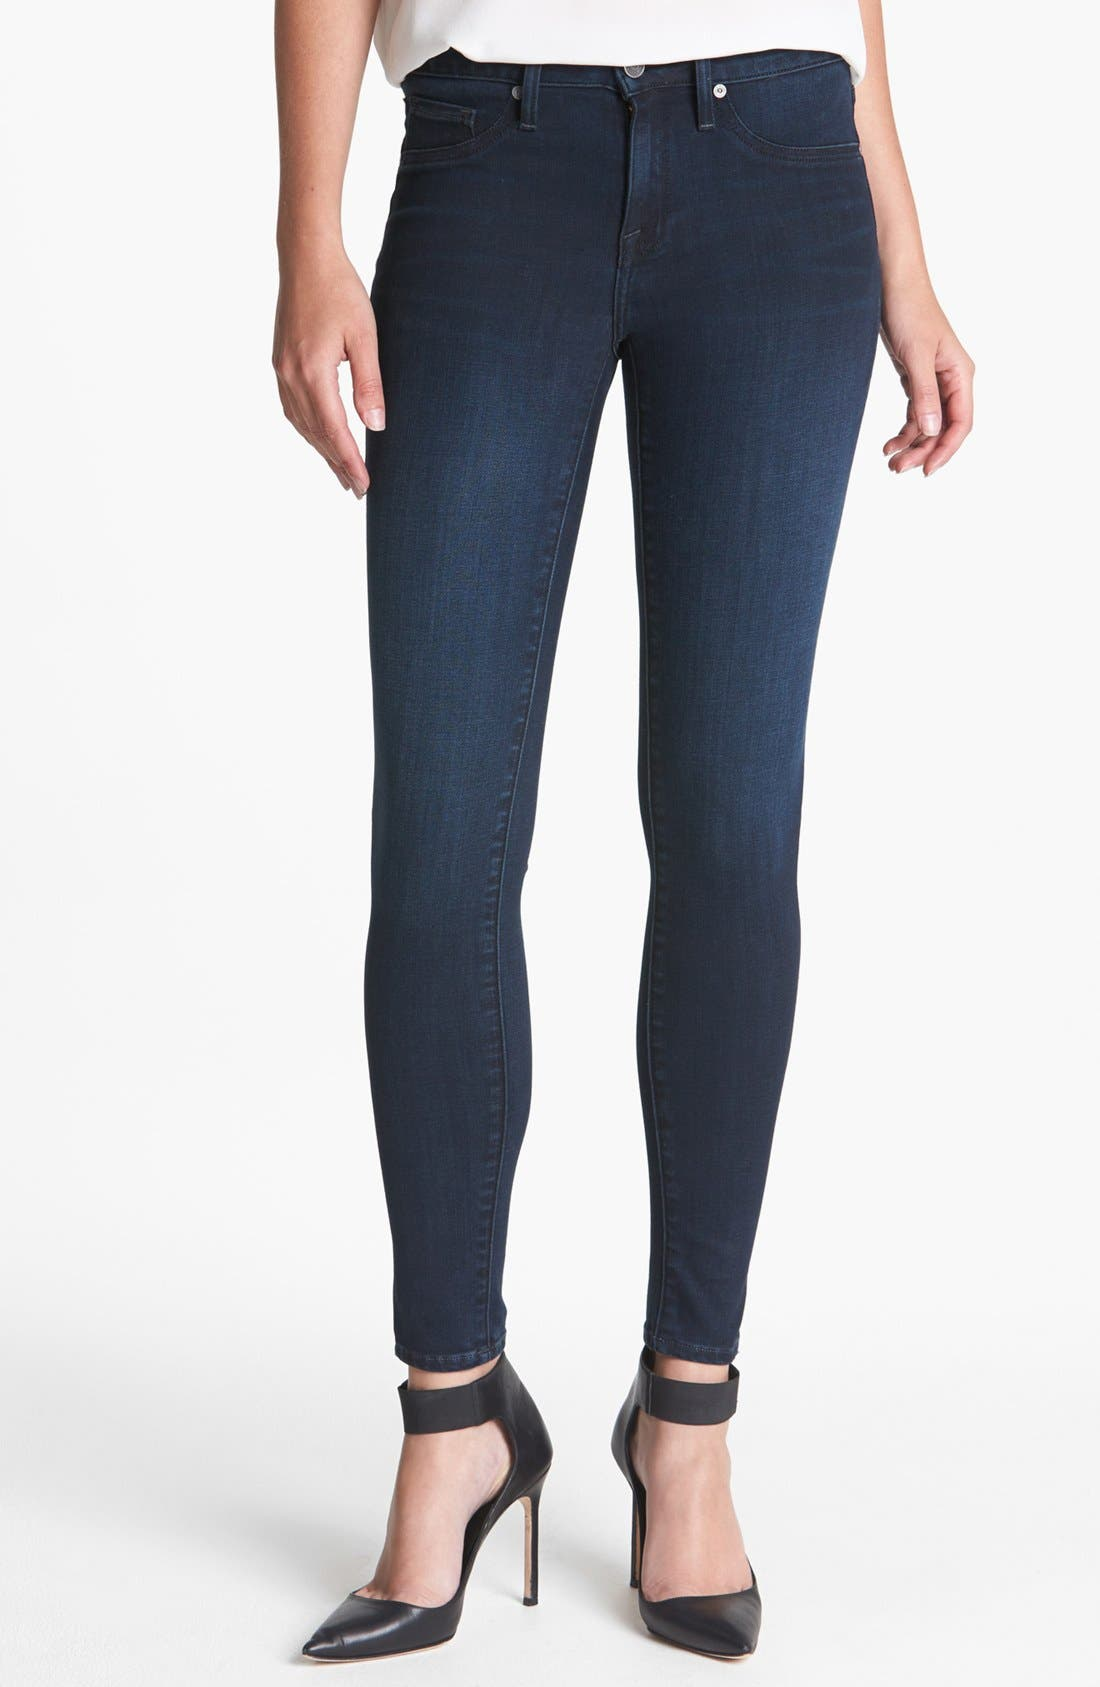 Main Image - Joie Ankle Stretch Skinny Jeans (Neptune)